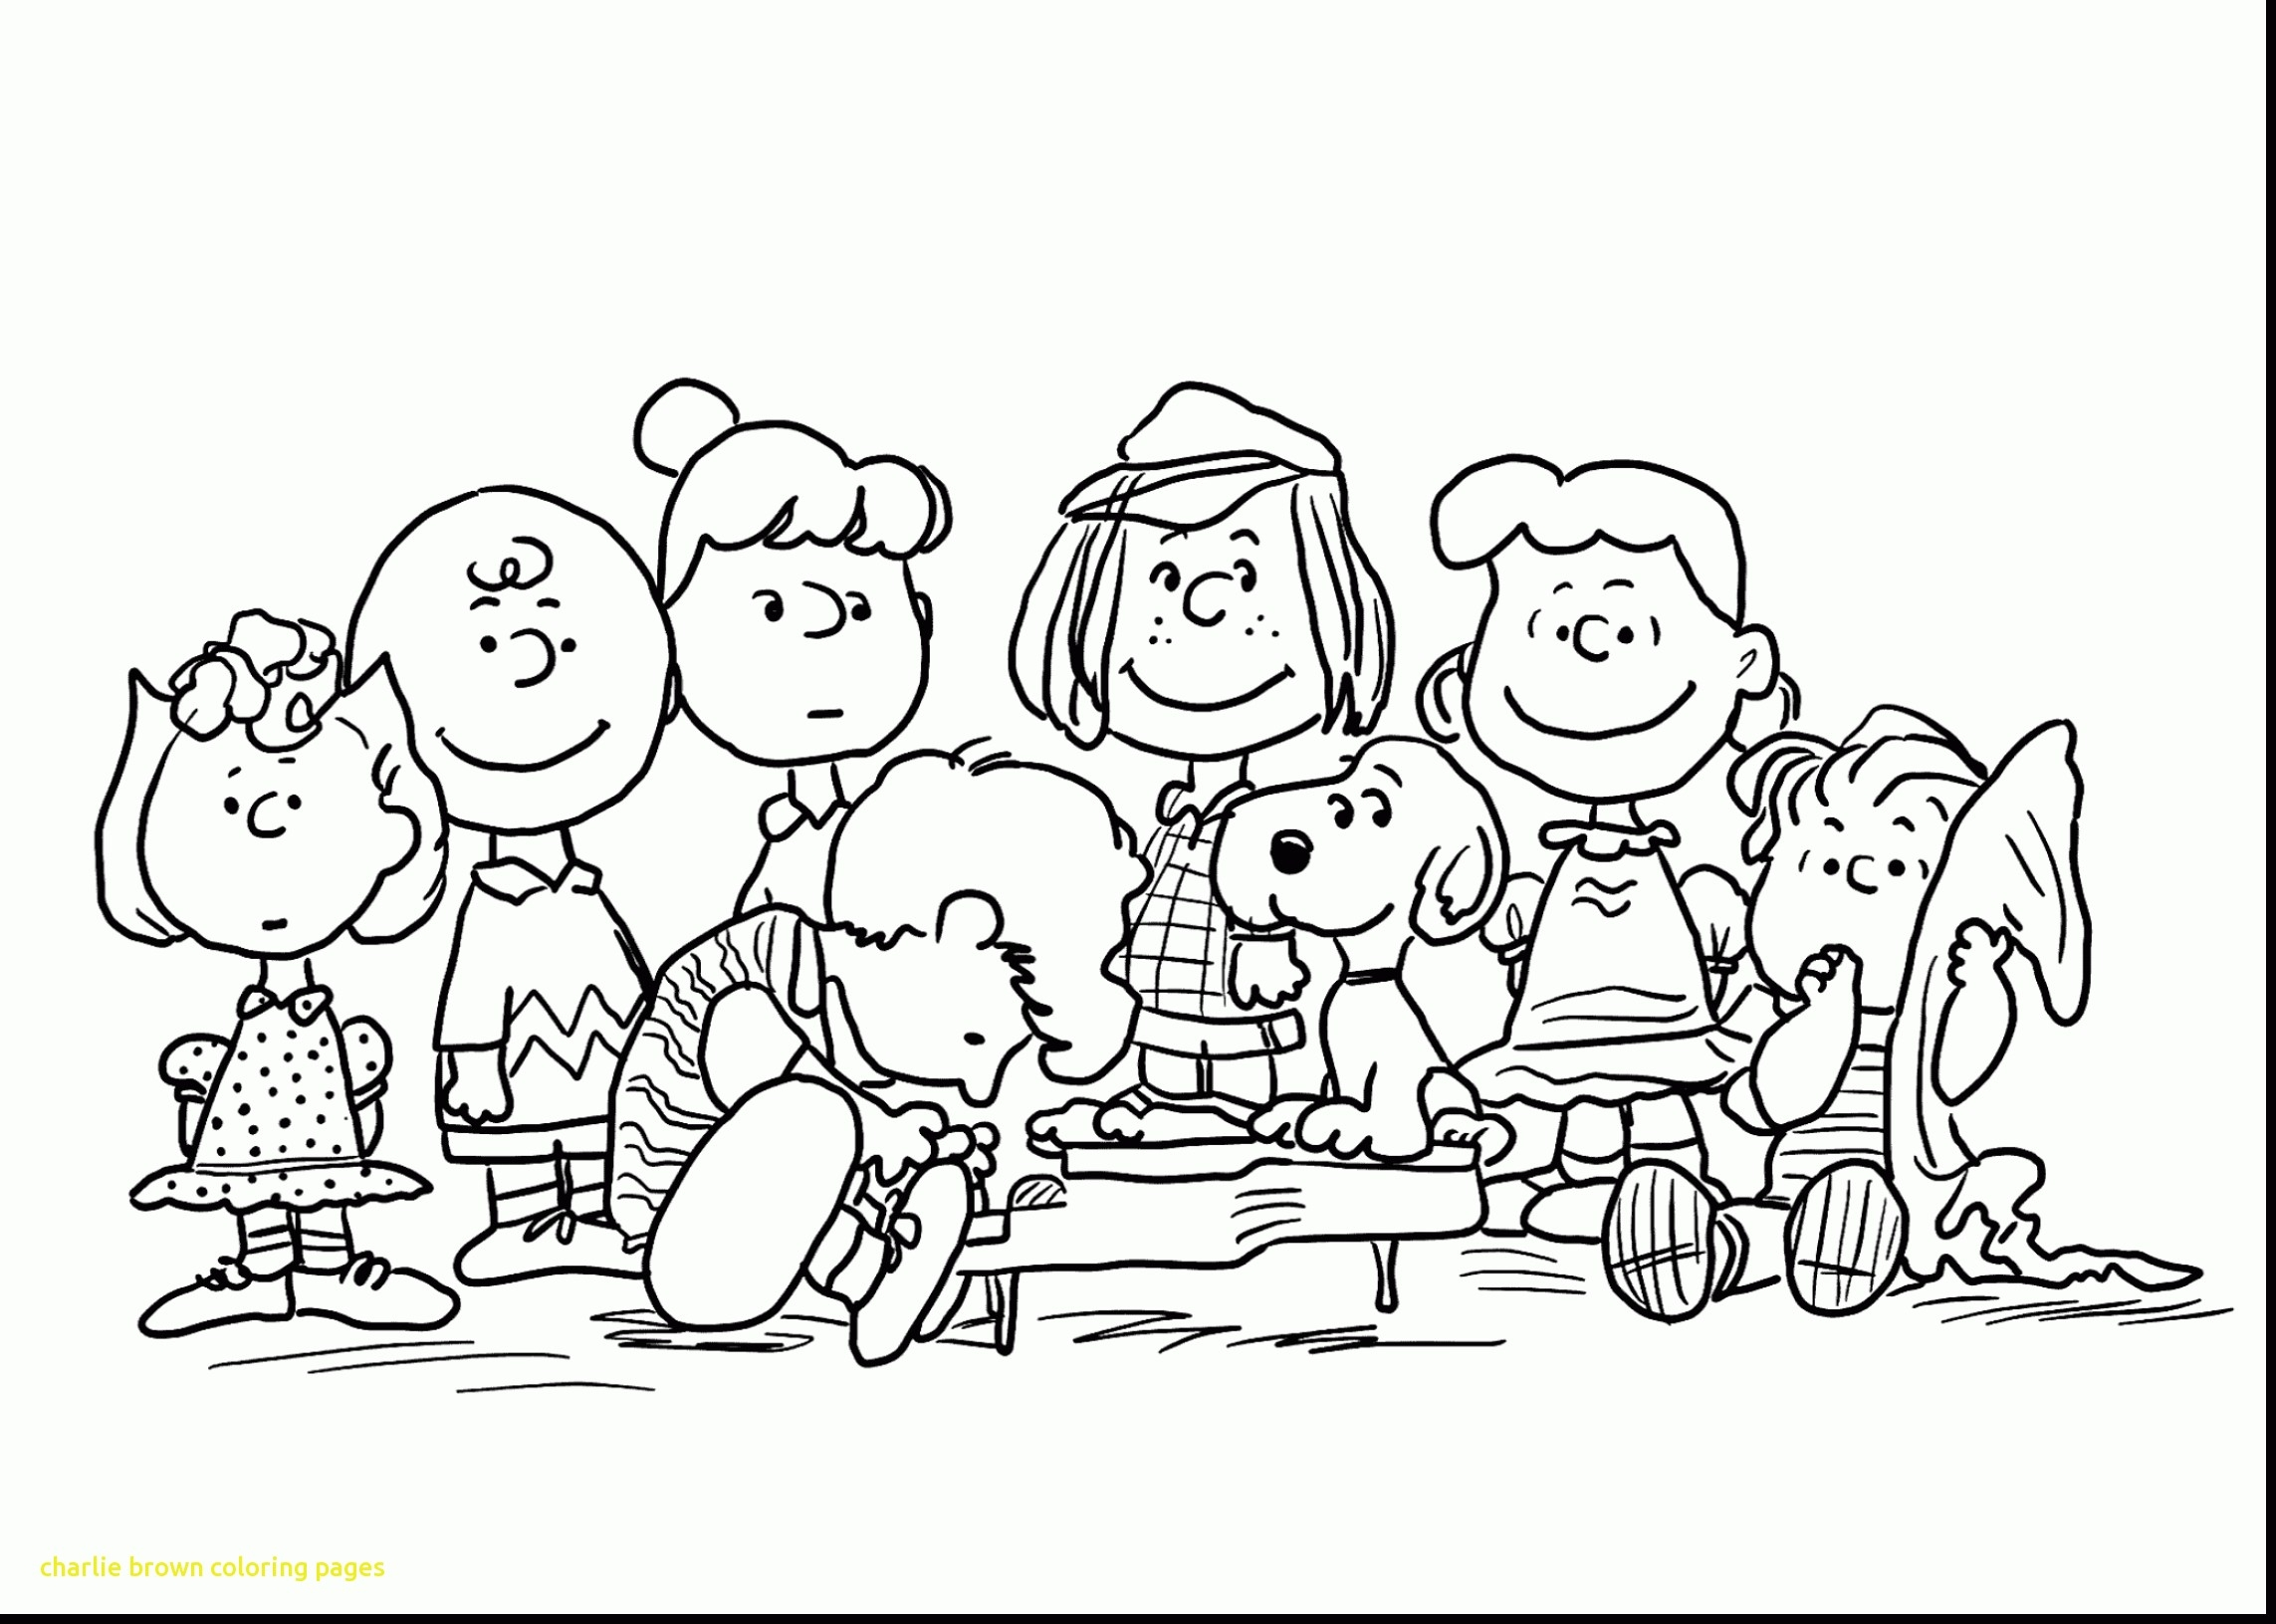 Merry Christmas Charlie Brown Coloring Pages With Snoopy Download Free Books